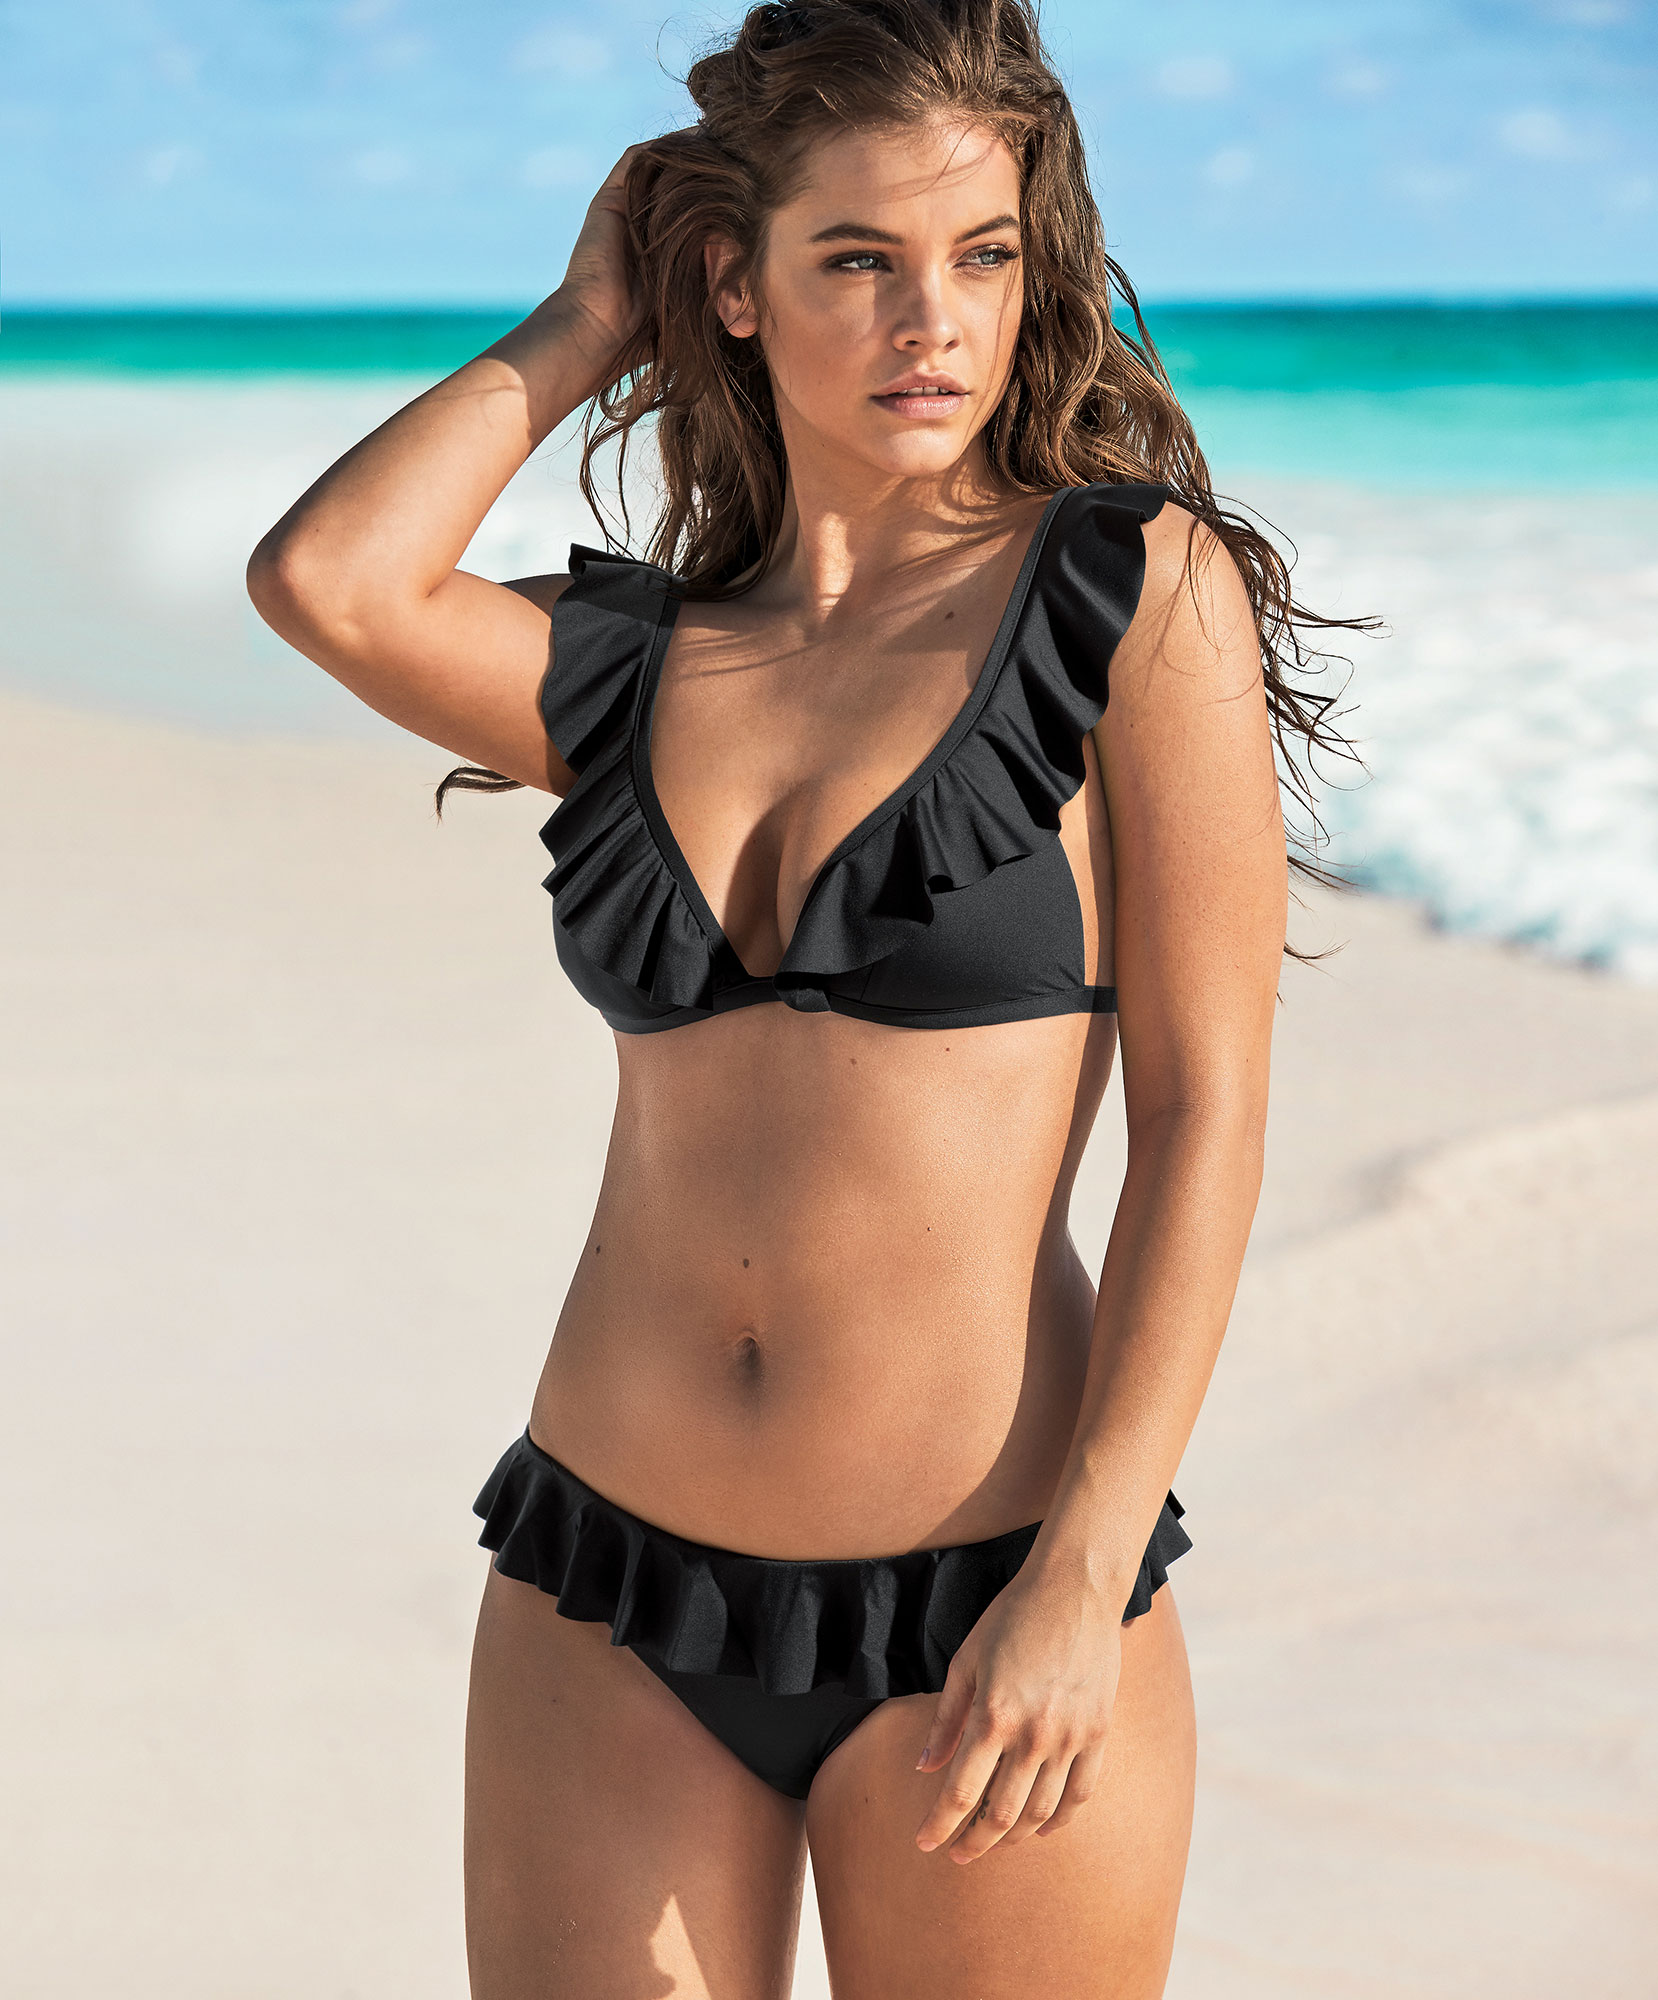 Barbara Palvin Calzedonia Swim beach - Dress up your go-to triangle top ($40, us.calzedonia.com ) and bikini bottom ($30, us.calzedonia.com ) with a some ruffles.